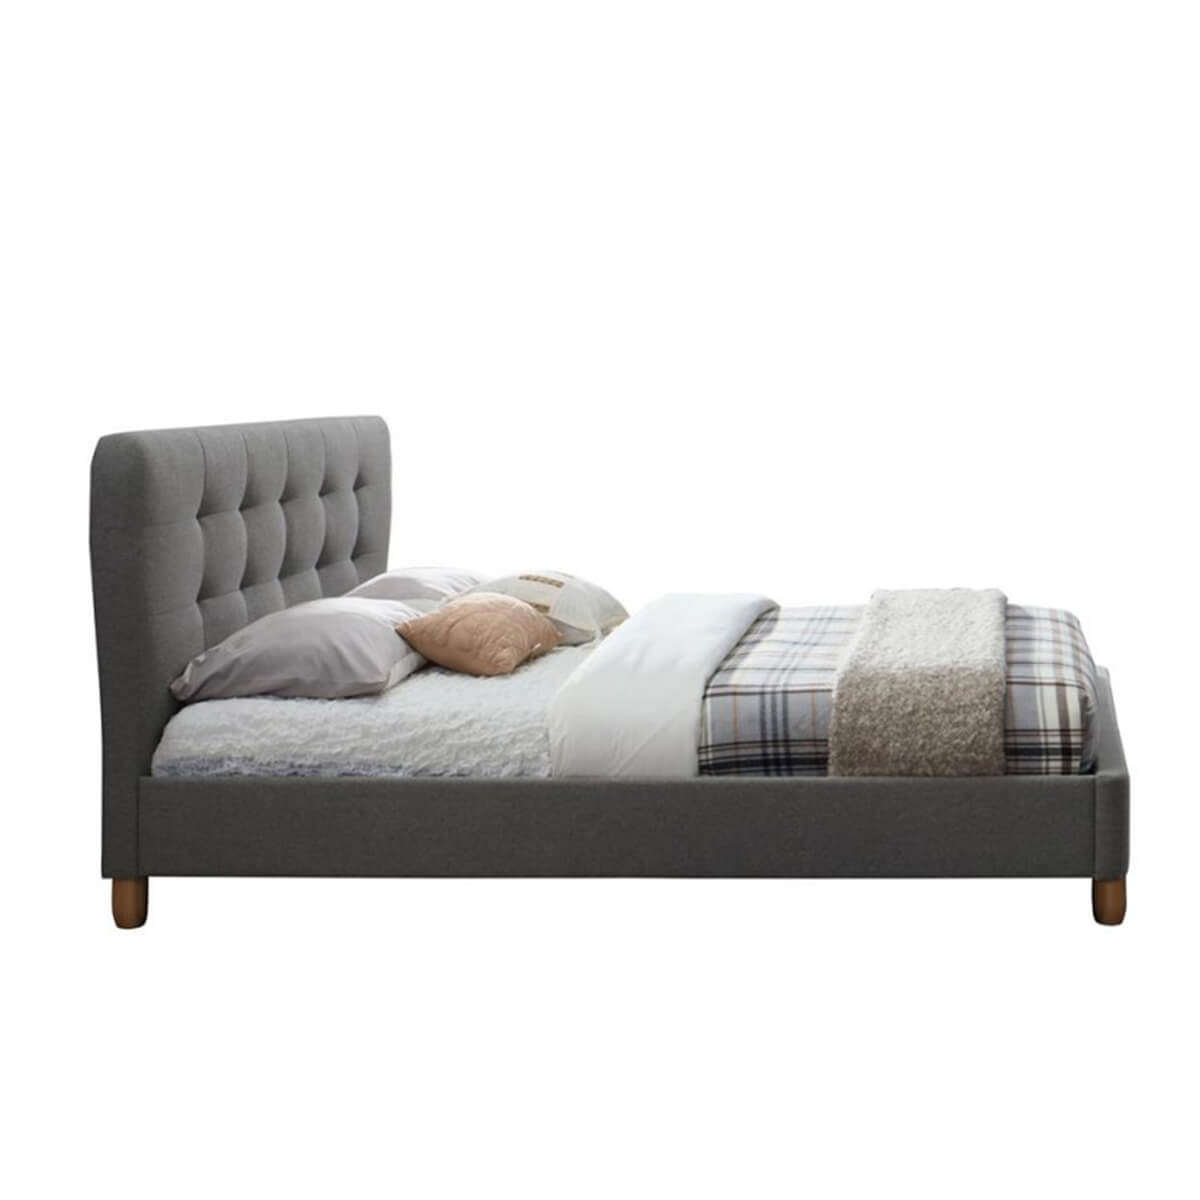 Cologne Fabric Bed Frame Grey 2